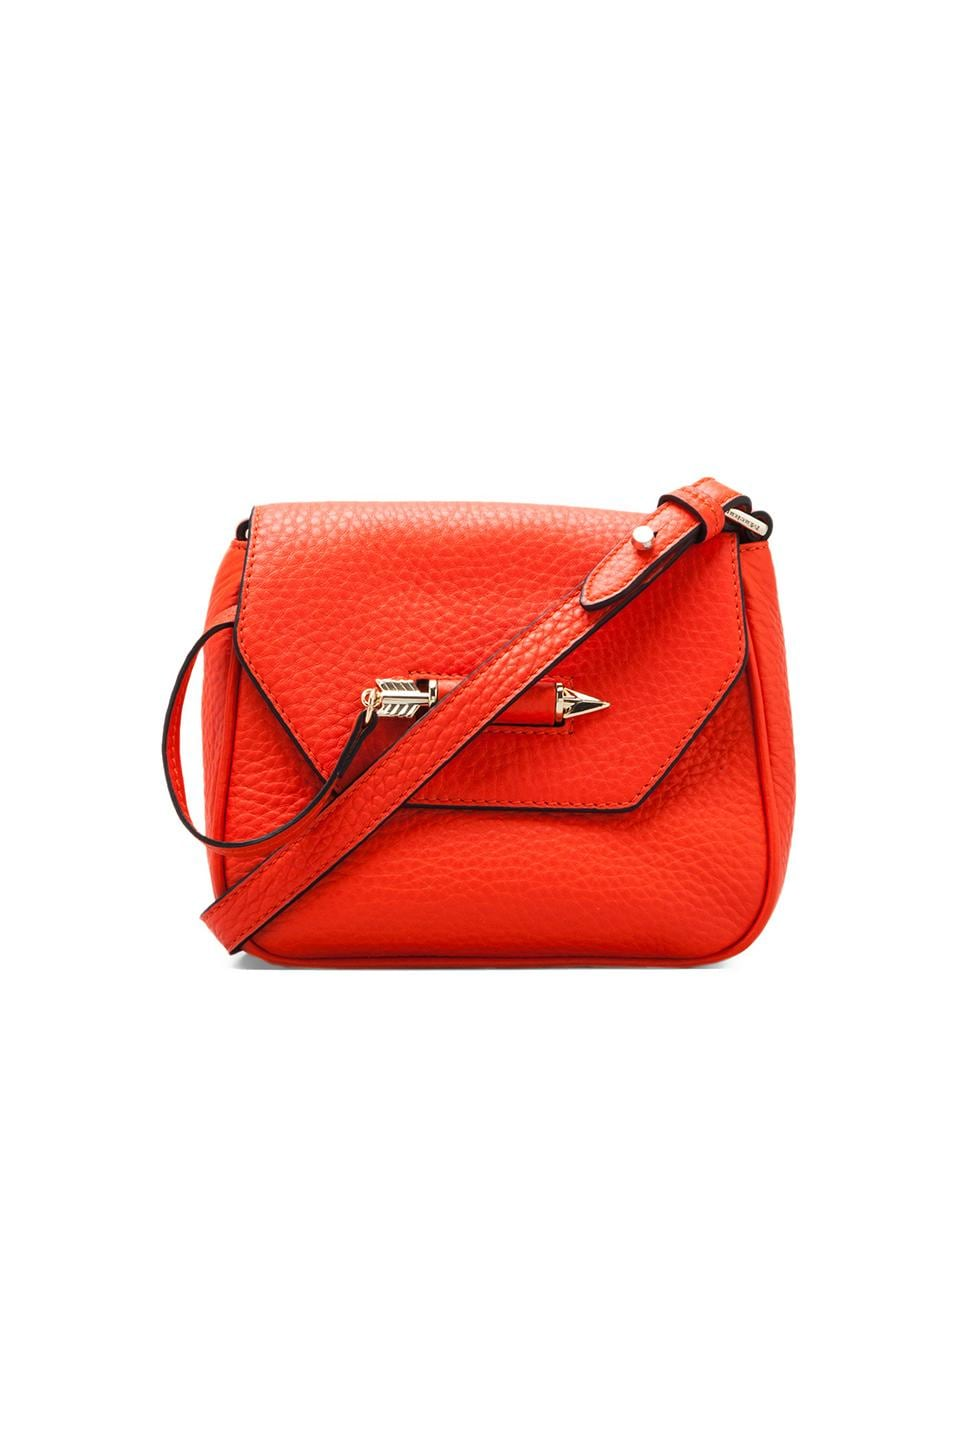 Mackage Novaki Cross Body Bag in Coral